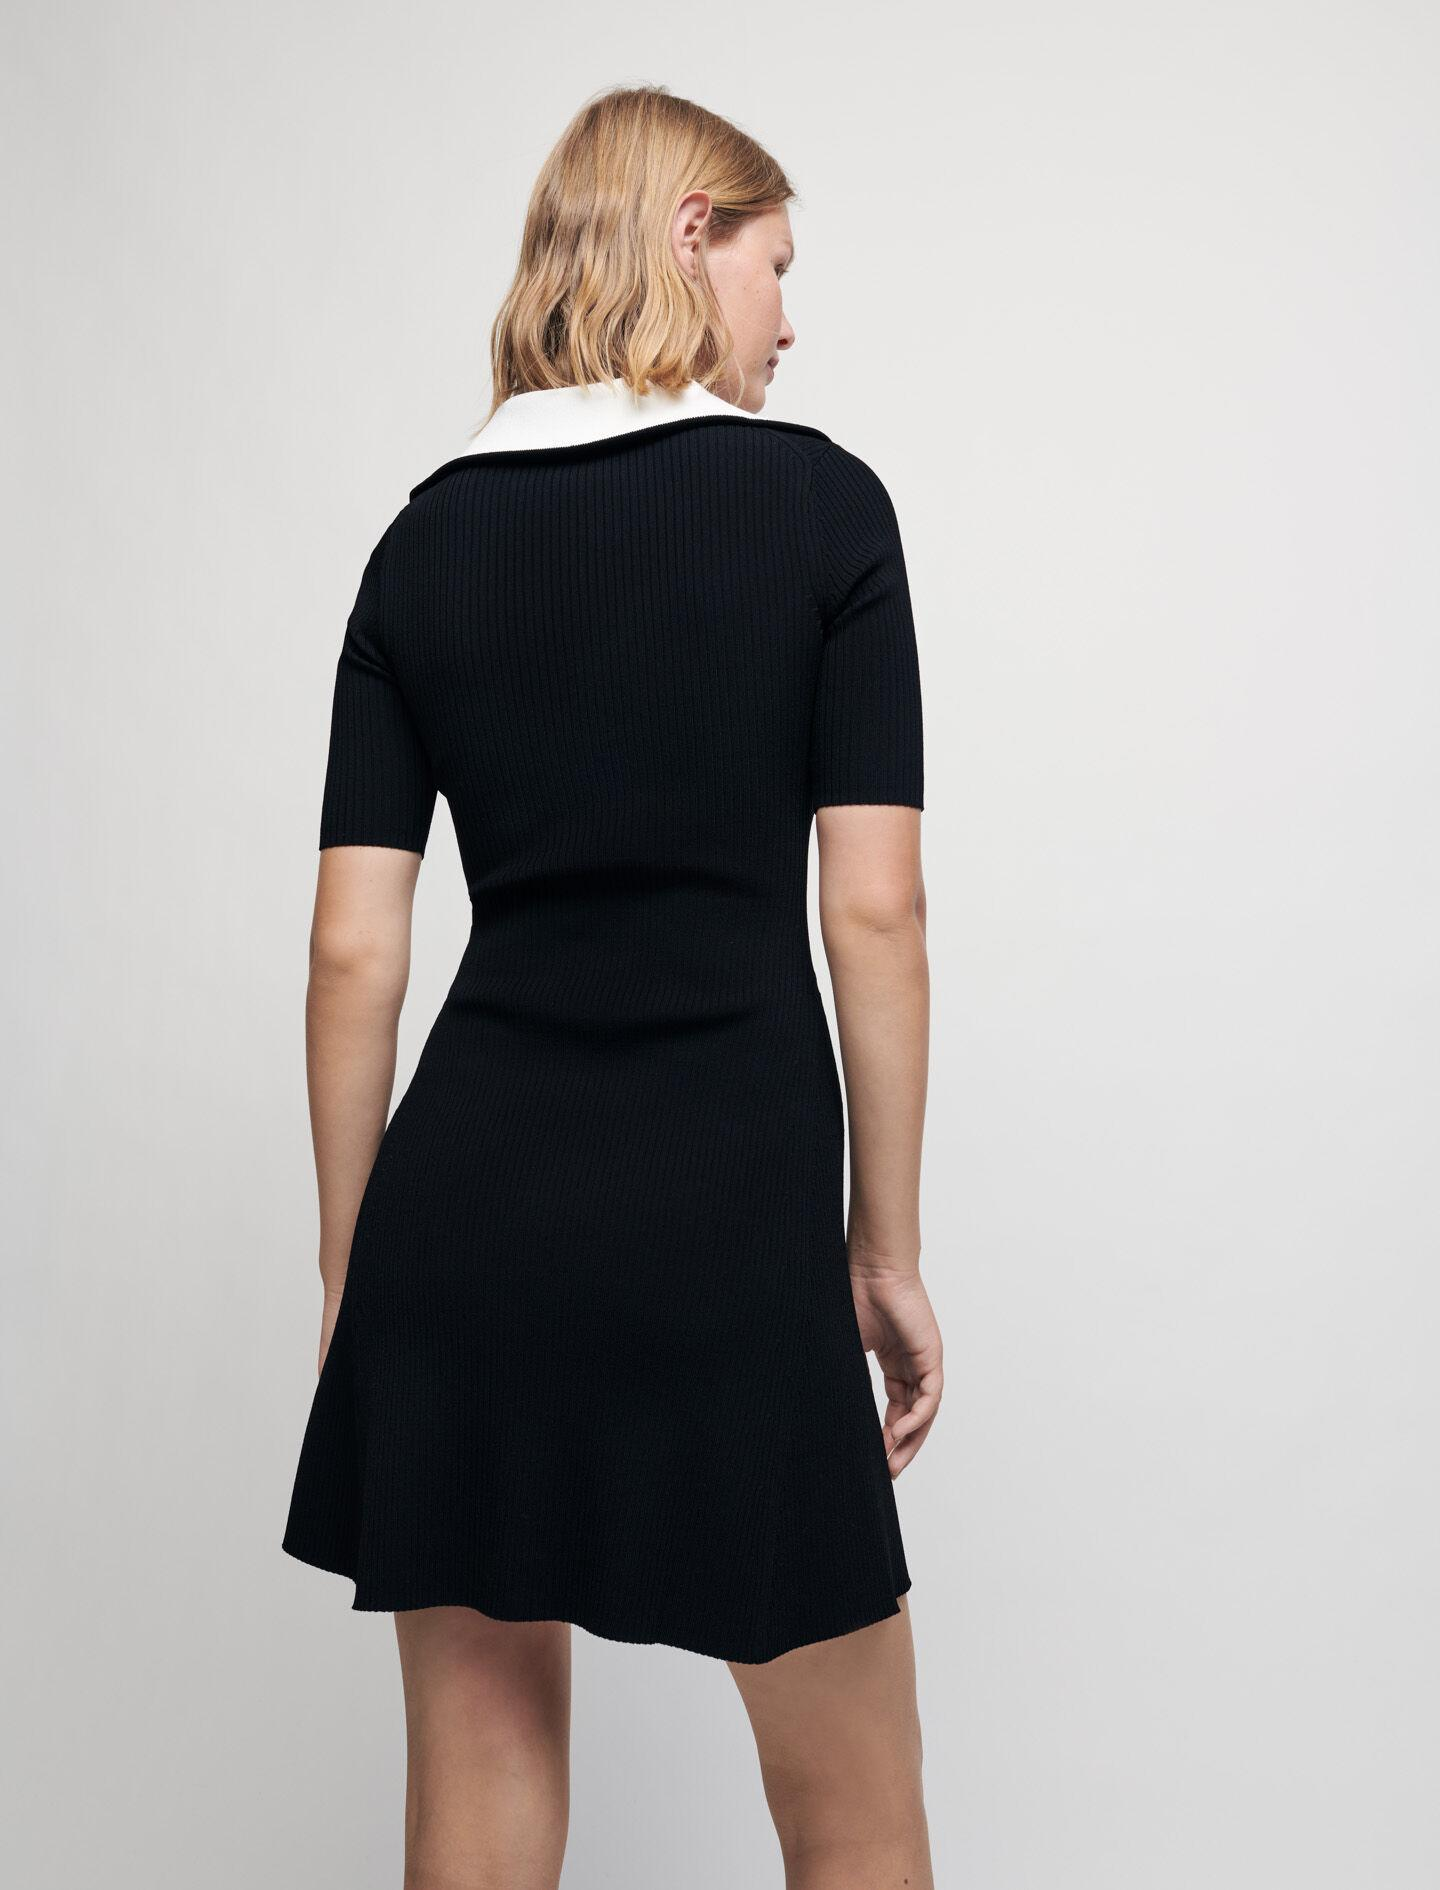 RIBBED KNIT DRESS WITH ZIP COLLAR 3